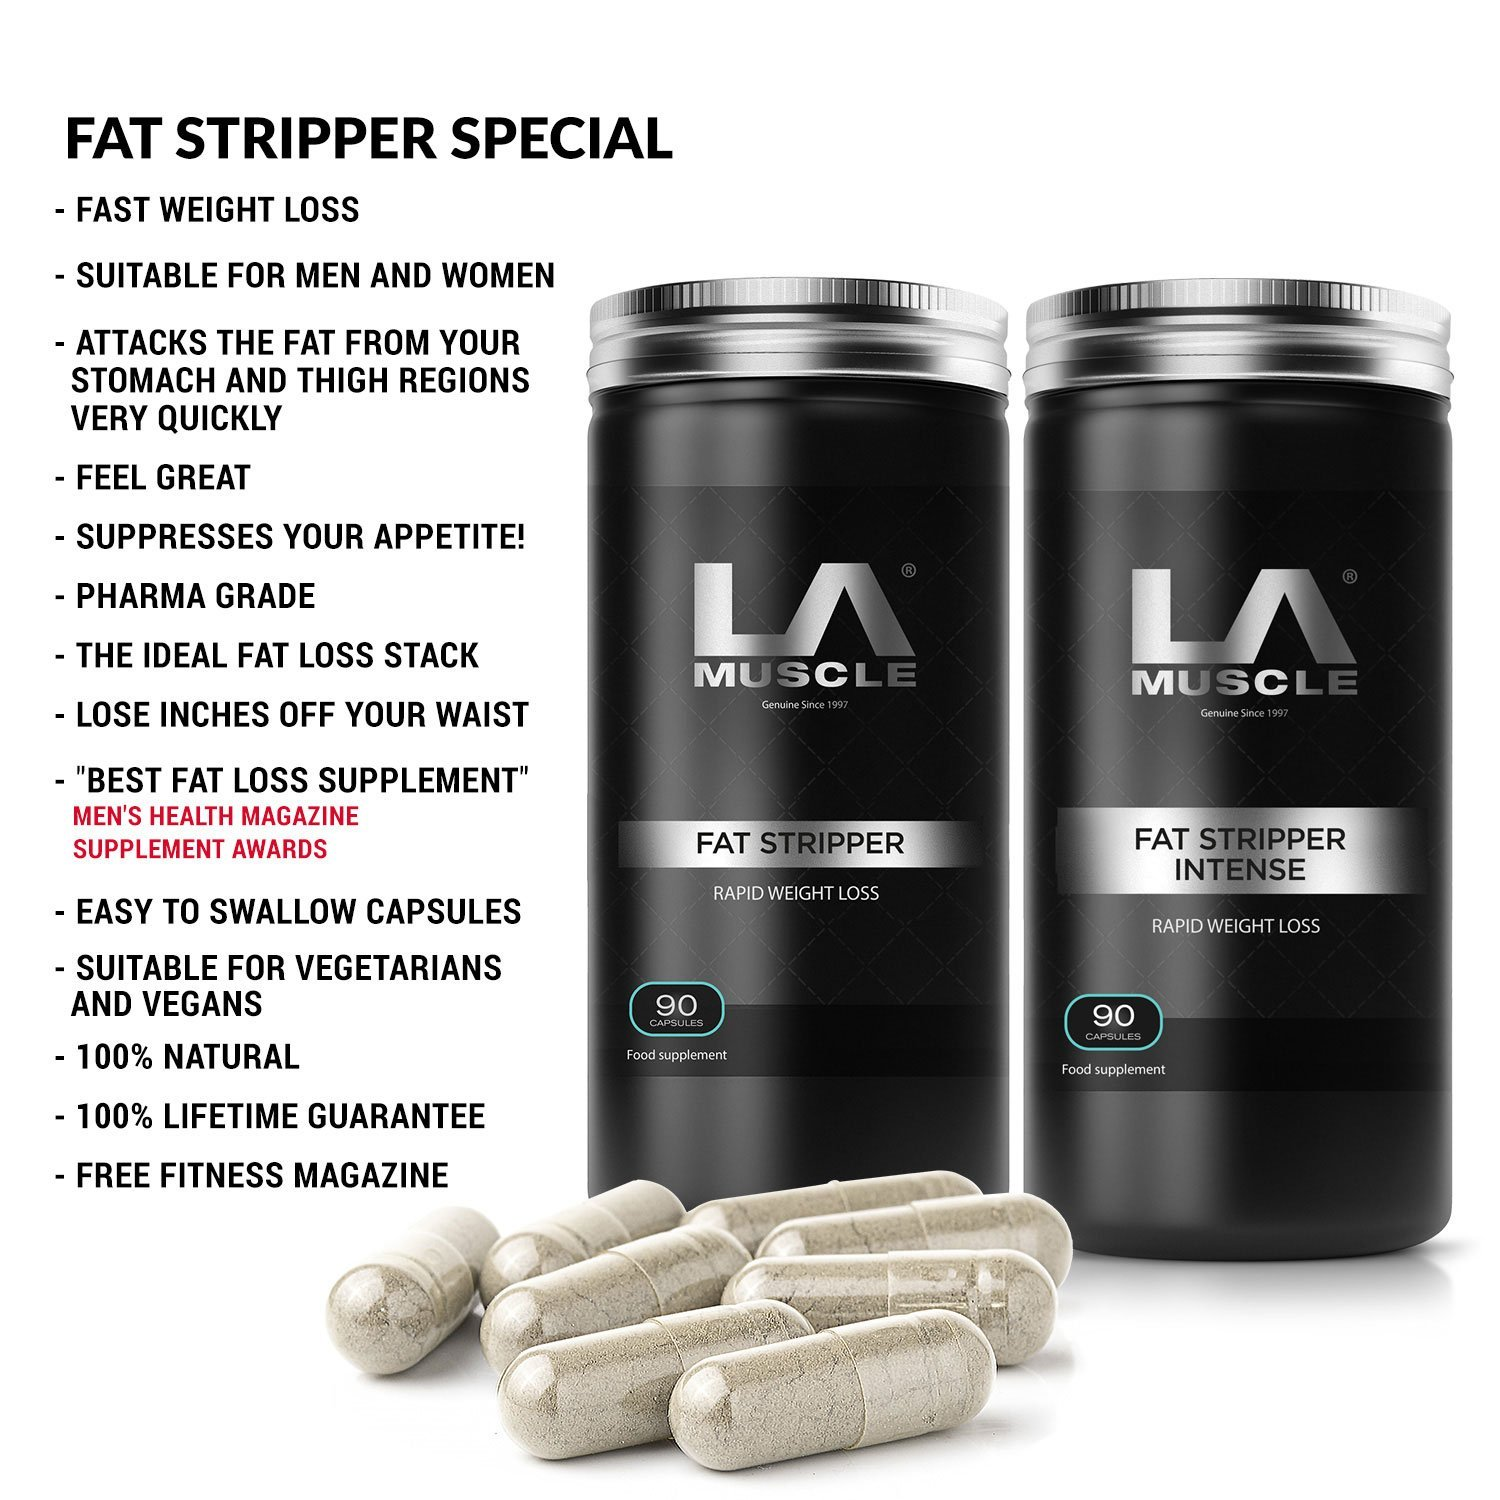 LA Muscle Fat Burners Weight Loss Diet Pills, Easy to swallow capsules suitable for vegetarians and vegans, , 2 Products in this amazing FAT BURNING STACK!